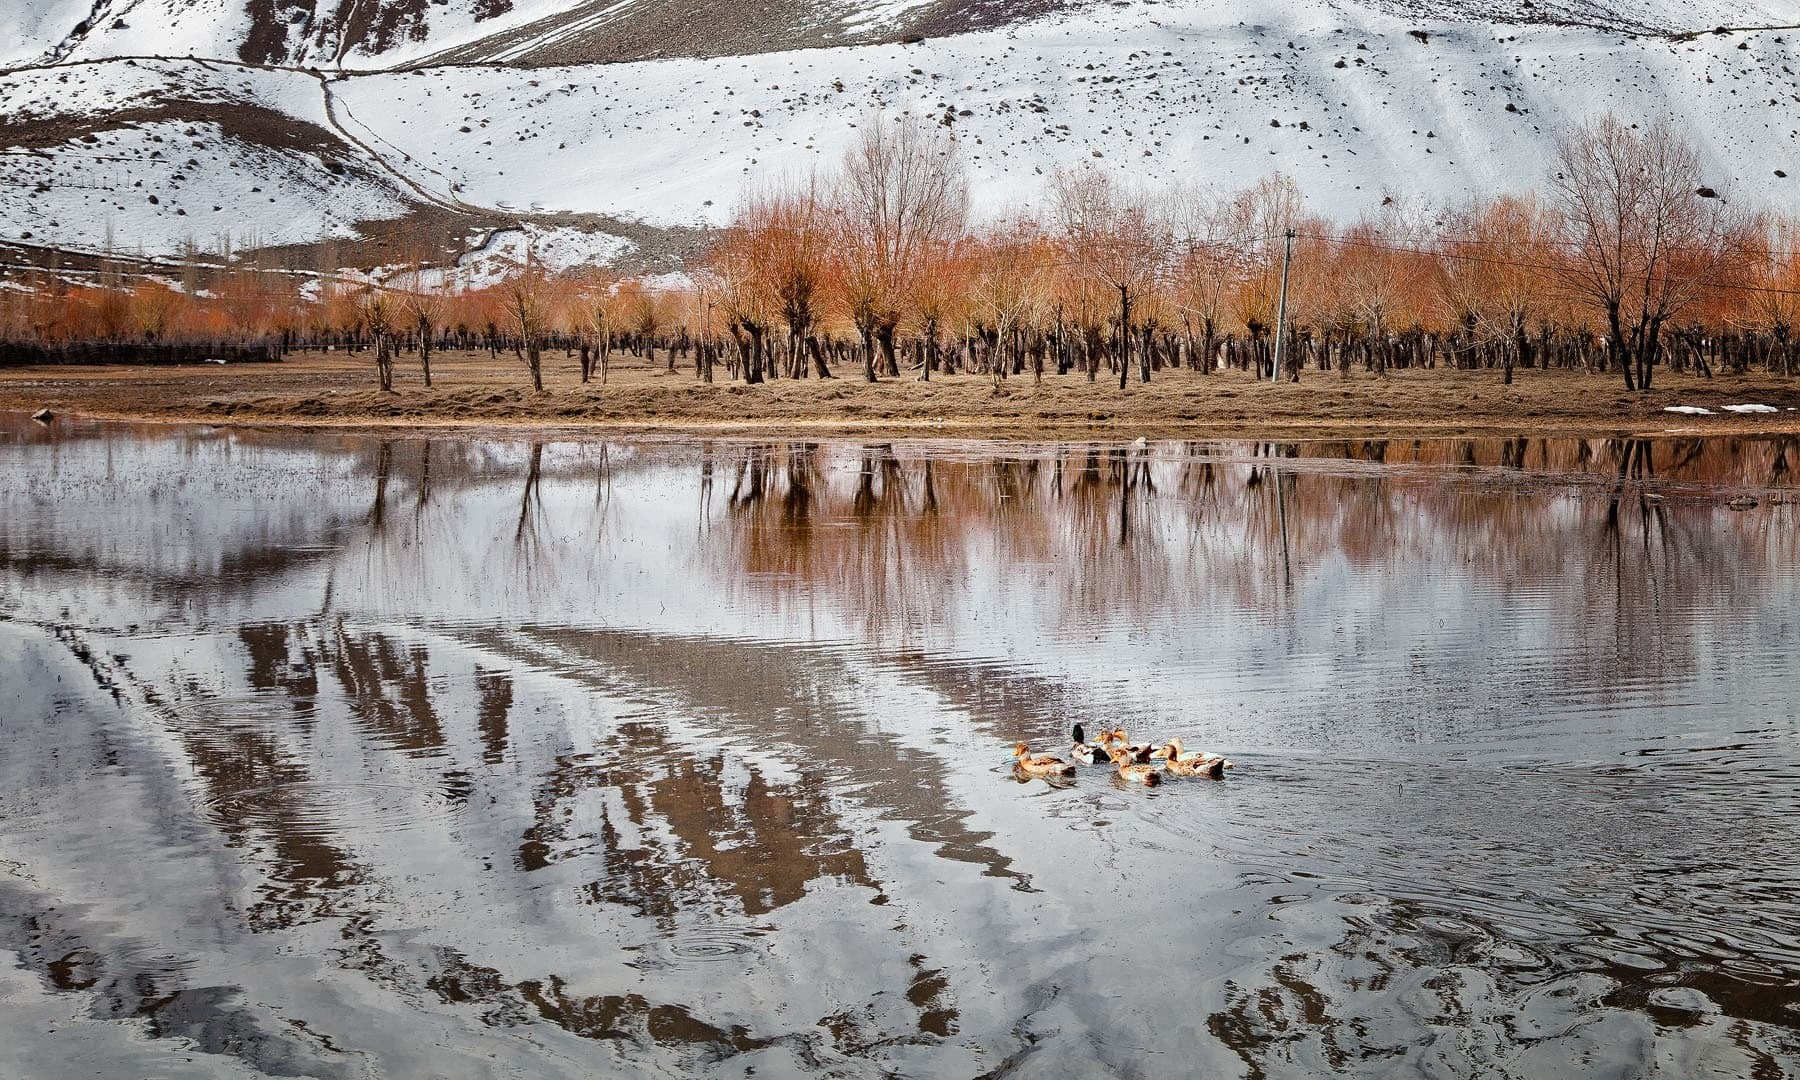 Ghizer District